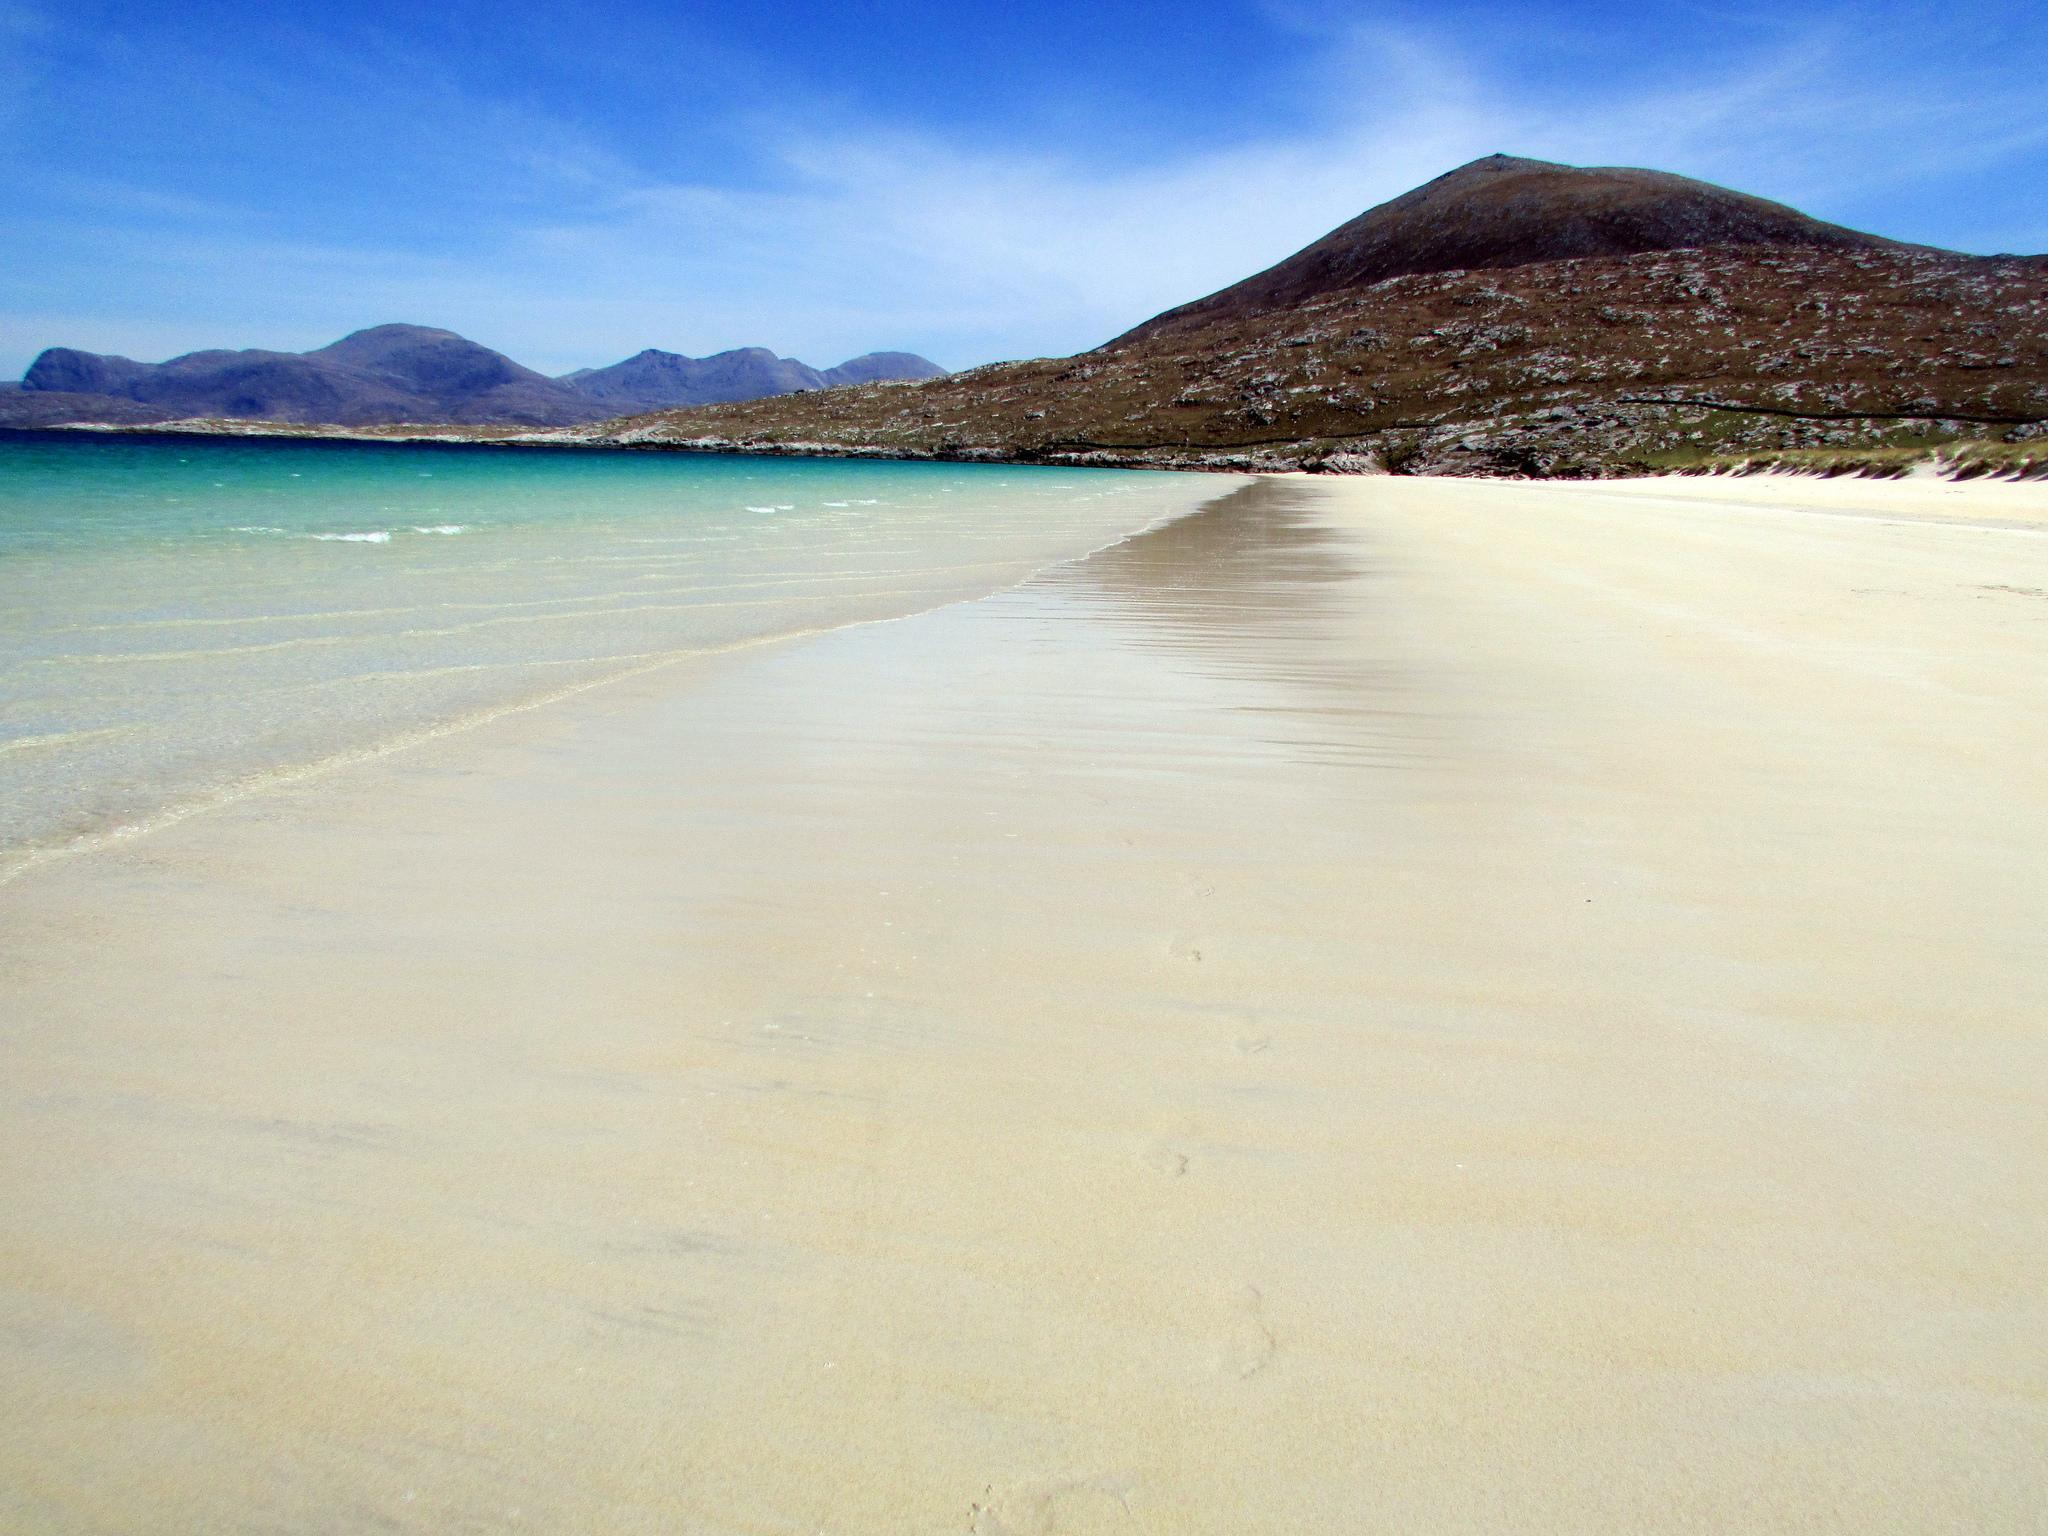 Of The UKs Best Beaches From Cornwall To The Outer Hebrides - Britains 15 best beaches